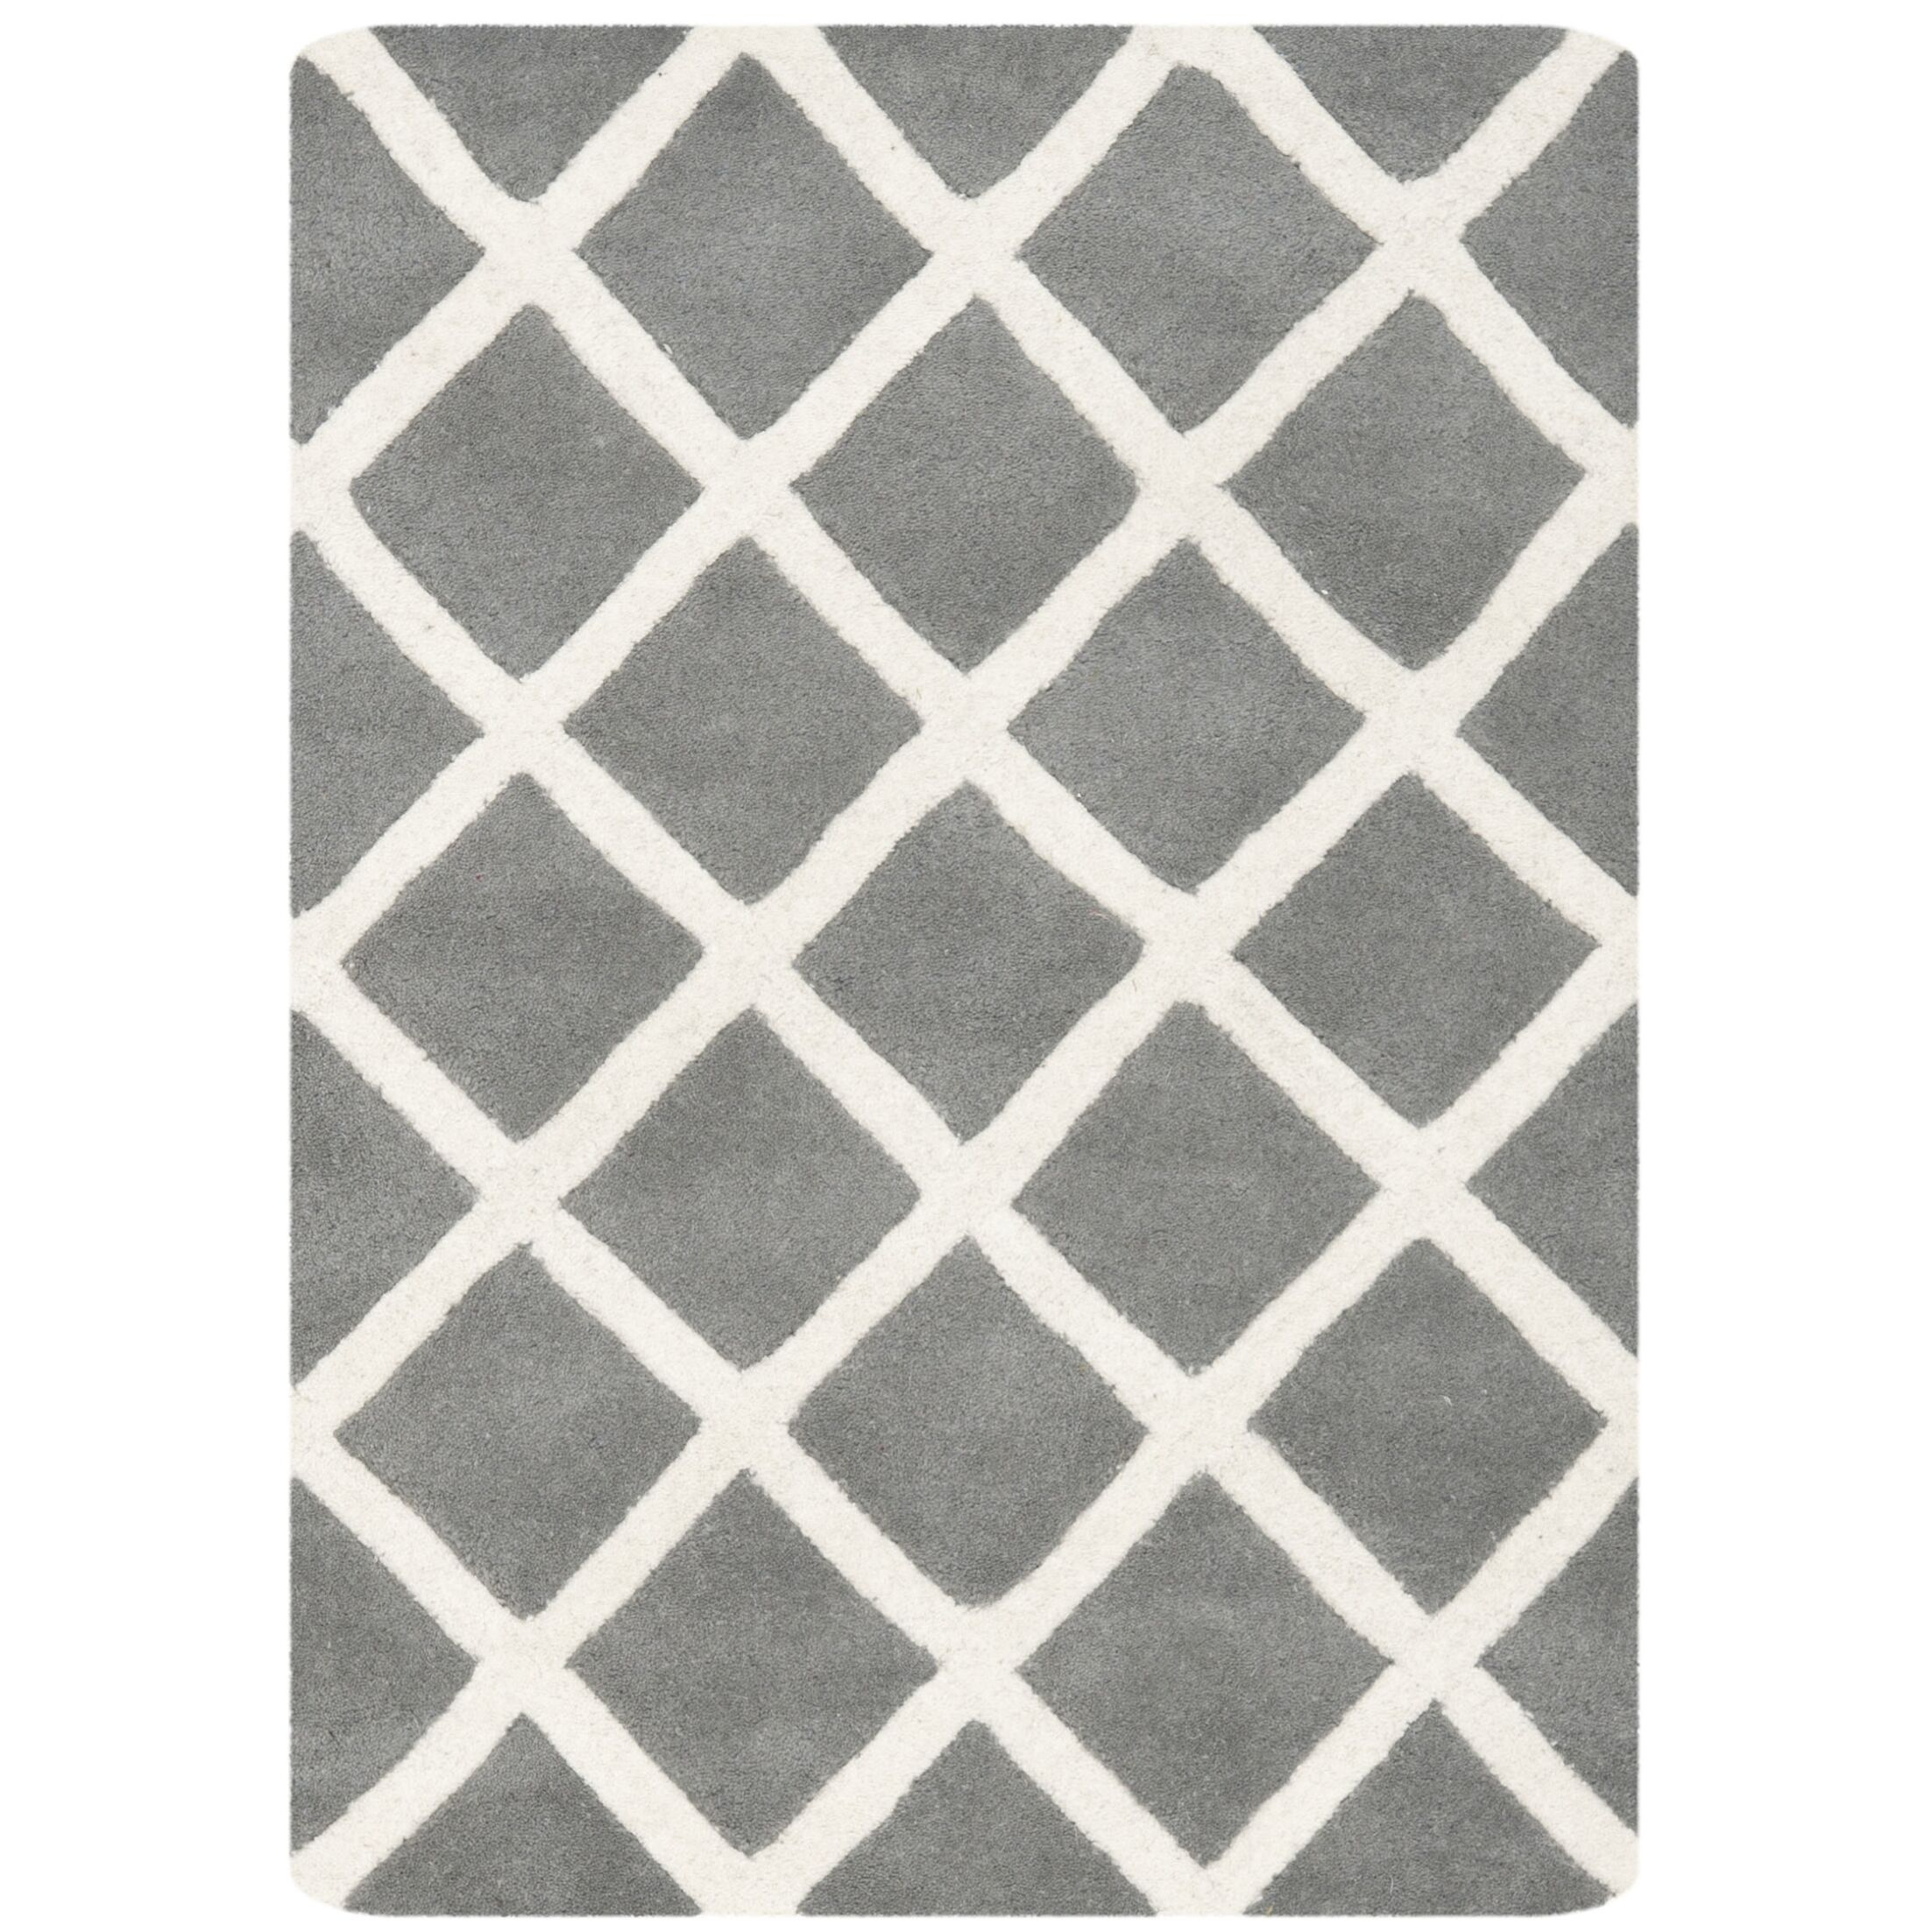 Wilkin Hand-Tufted Dark Gray/Ivory Area Rug Rug Size: Rectangle 8' x 10'